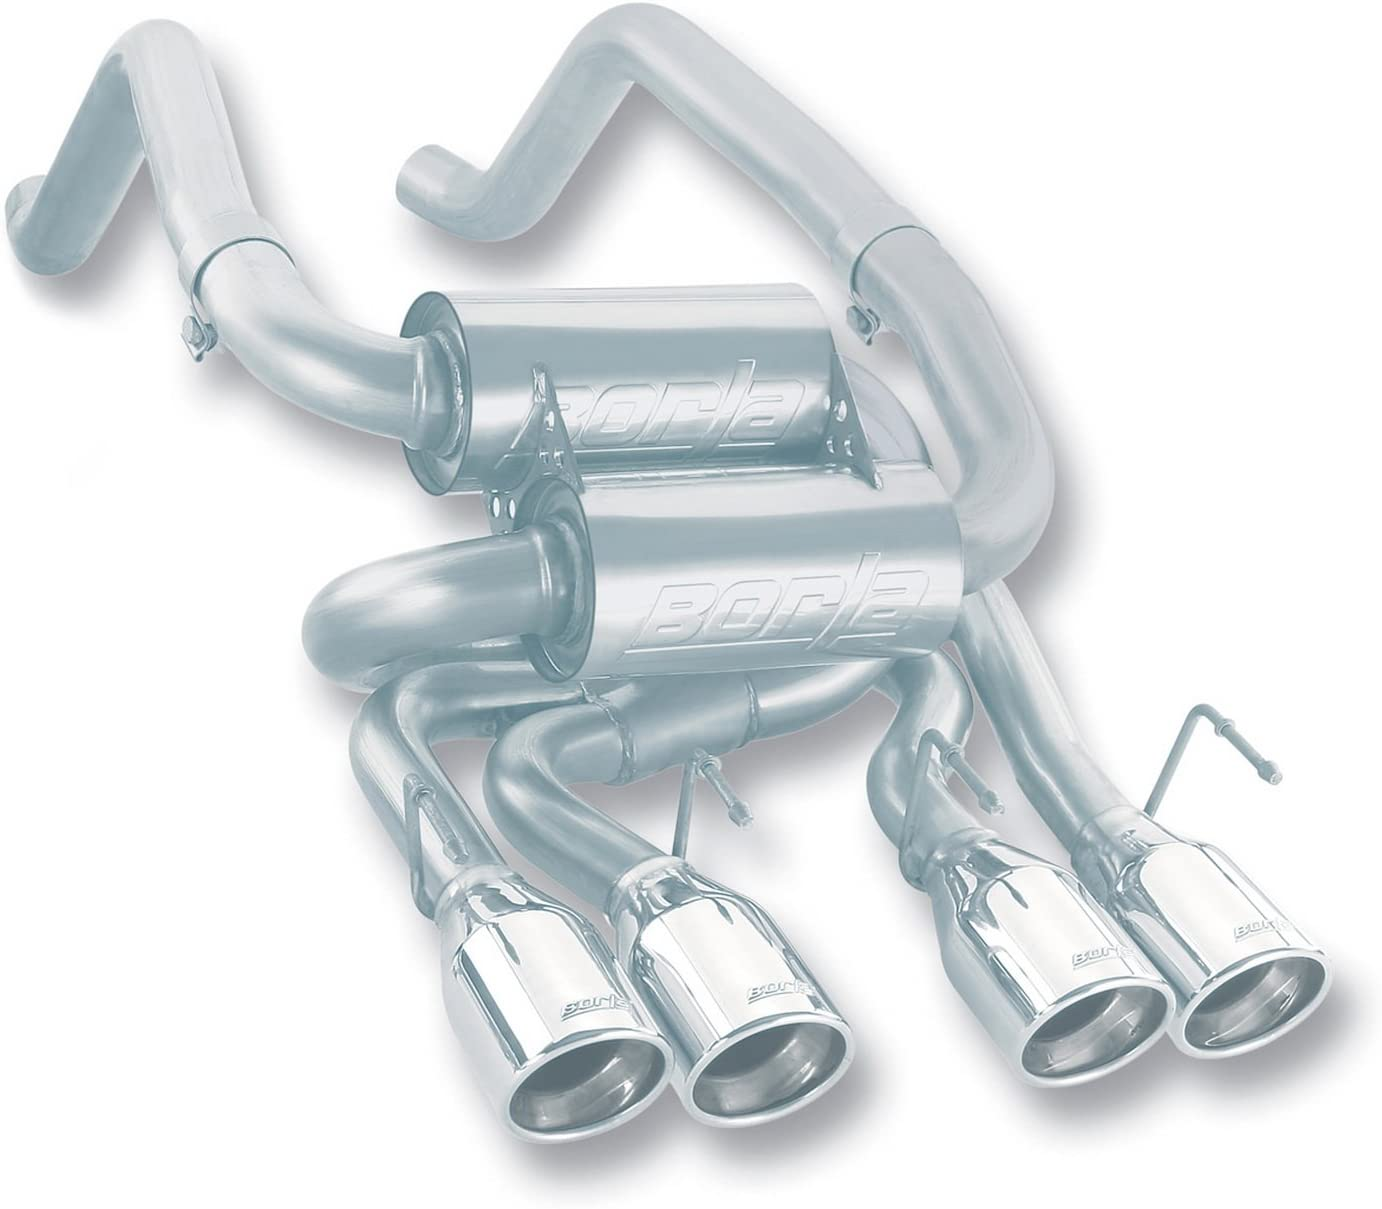 Borla 140017 Corvette Cat-BackS-Type System Exhaust